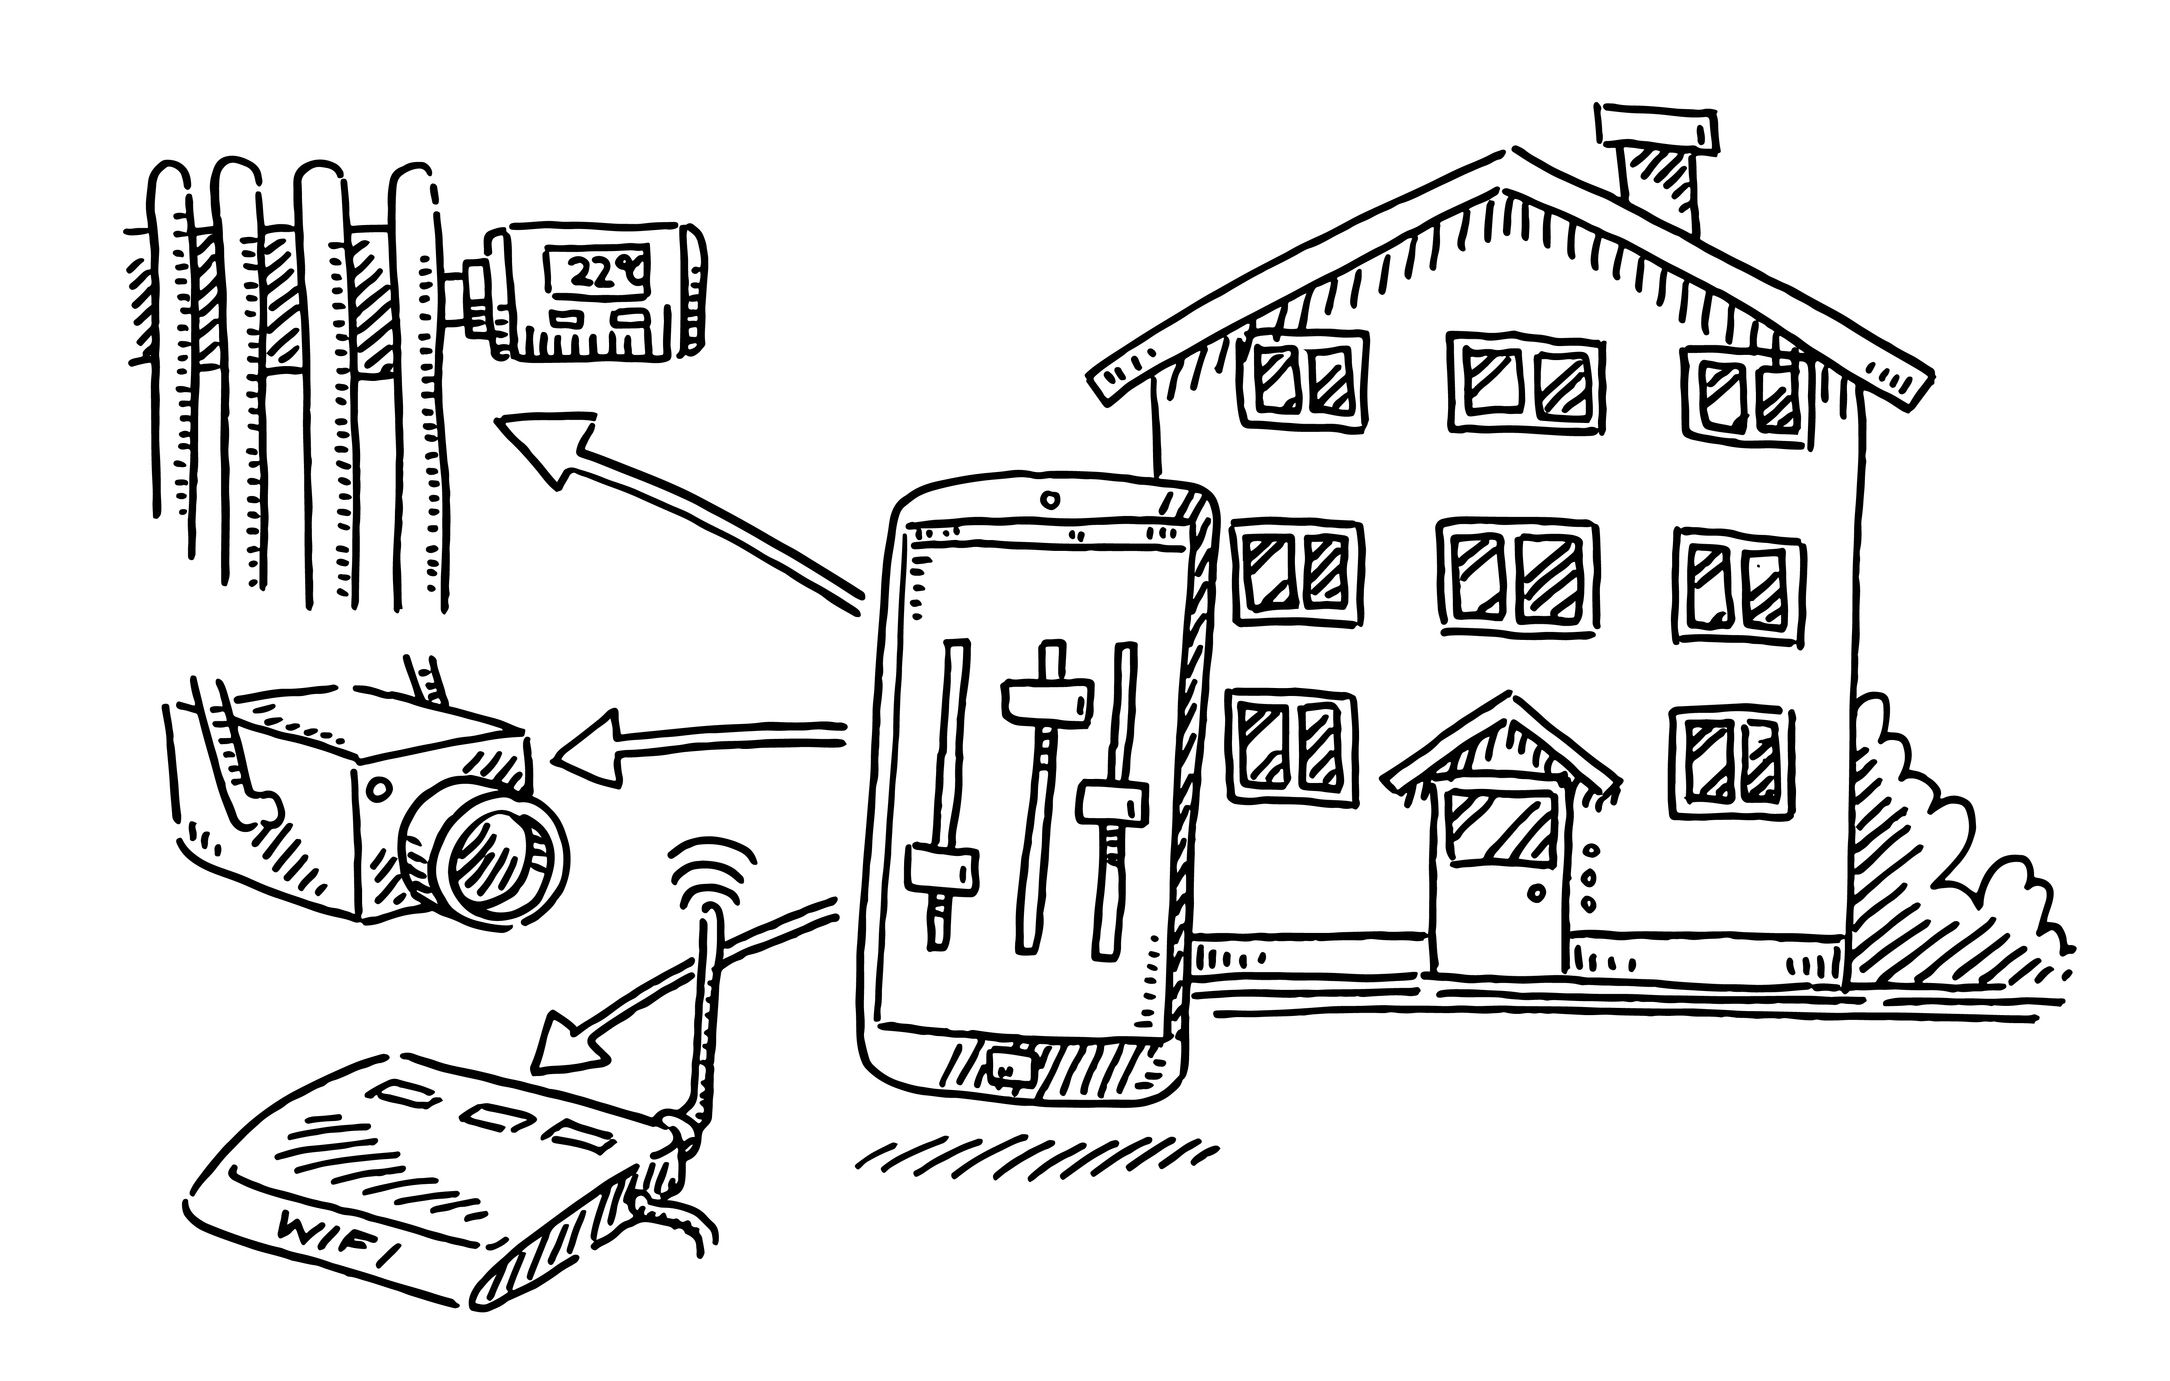 6 Things You Need to Set up Your Smart Home